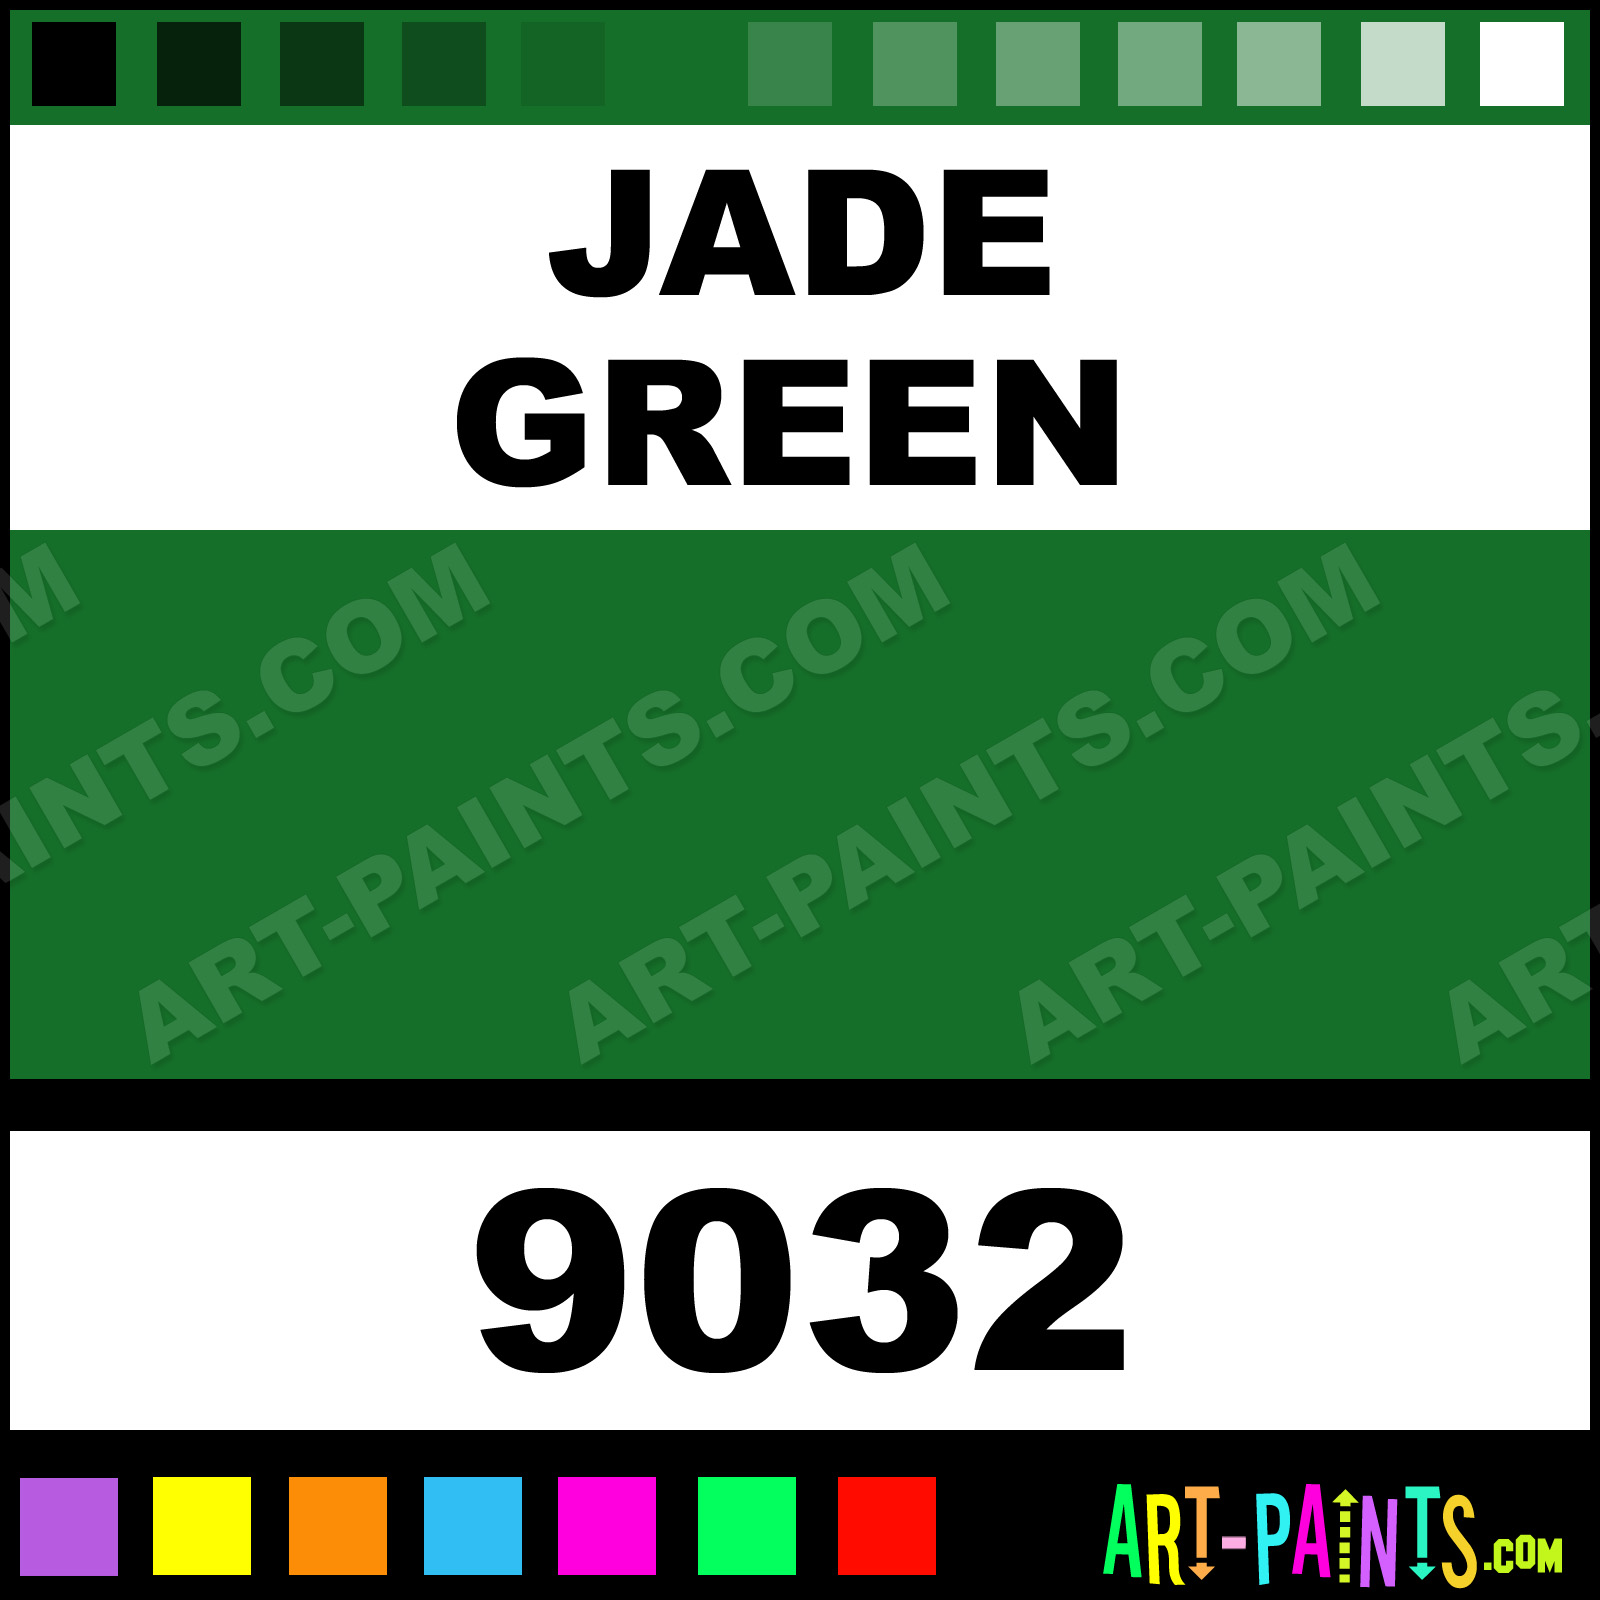 Jade Green Tattoo Colors Tattoo Ink Paints 9032 Jade Green Paint Jade Green Color